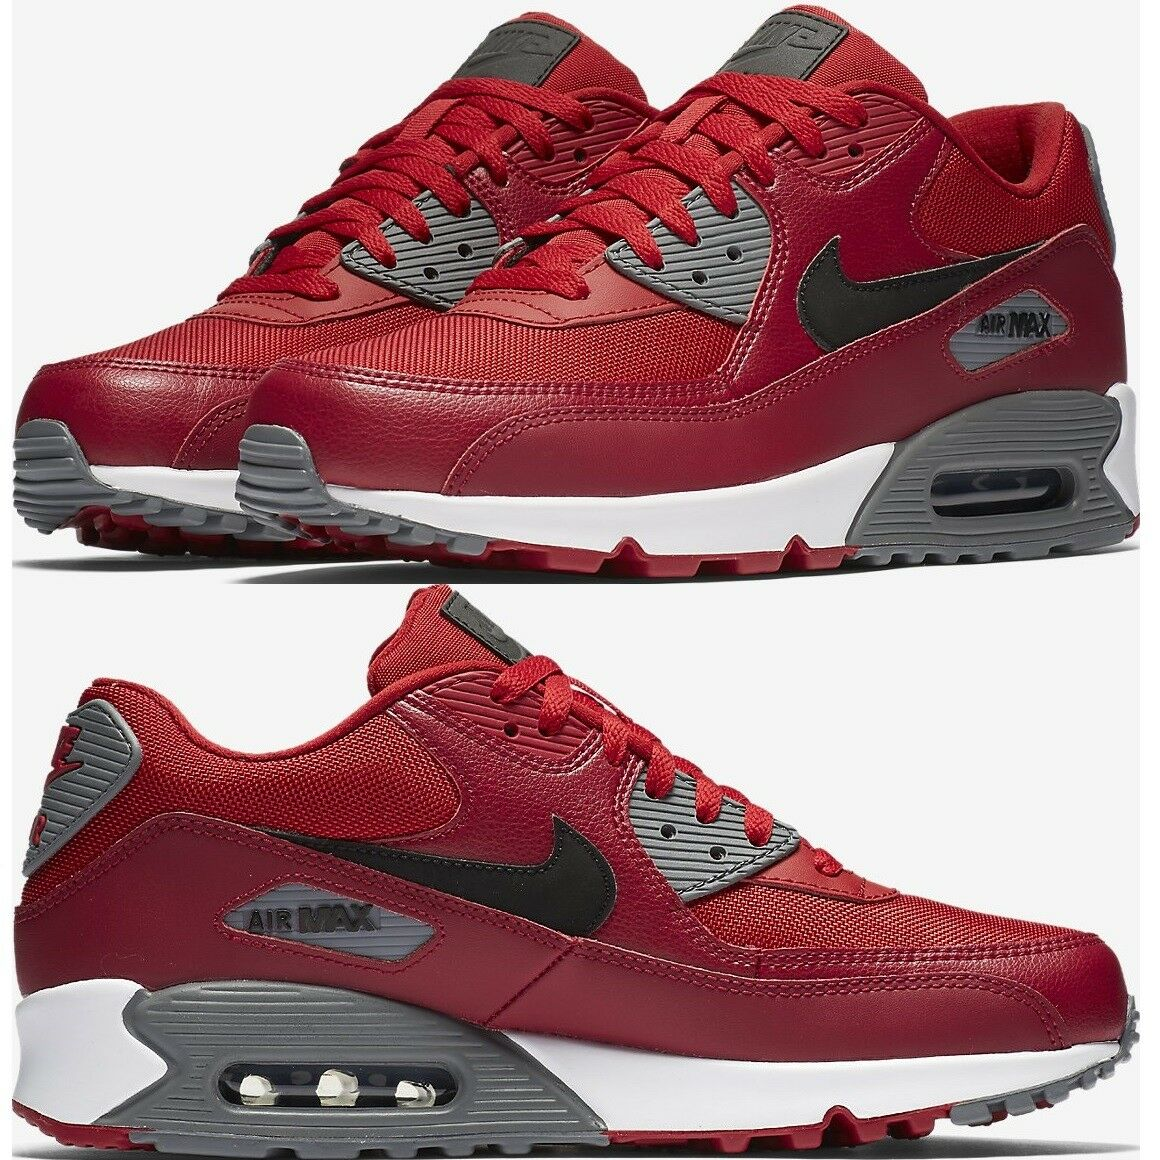 NIKE AIR MAX 90 ESSENTIAL homme fonctionnement COMFY SNEAKER Gym rouge/noir/Noble rouge